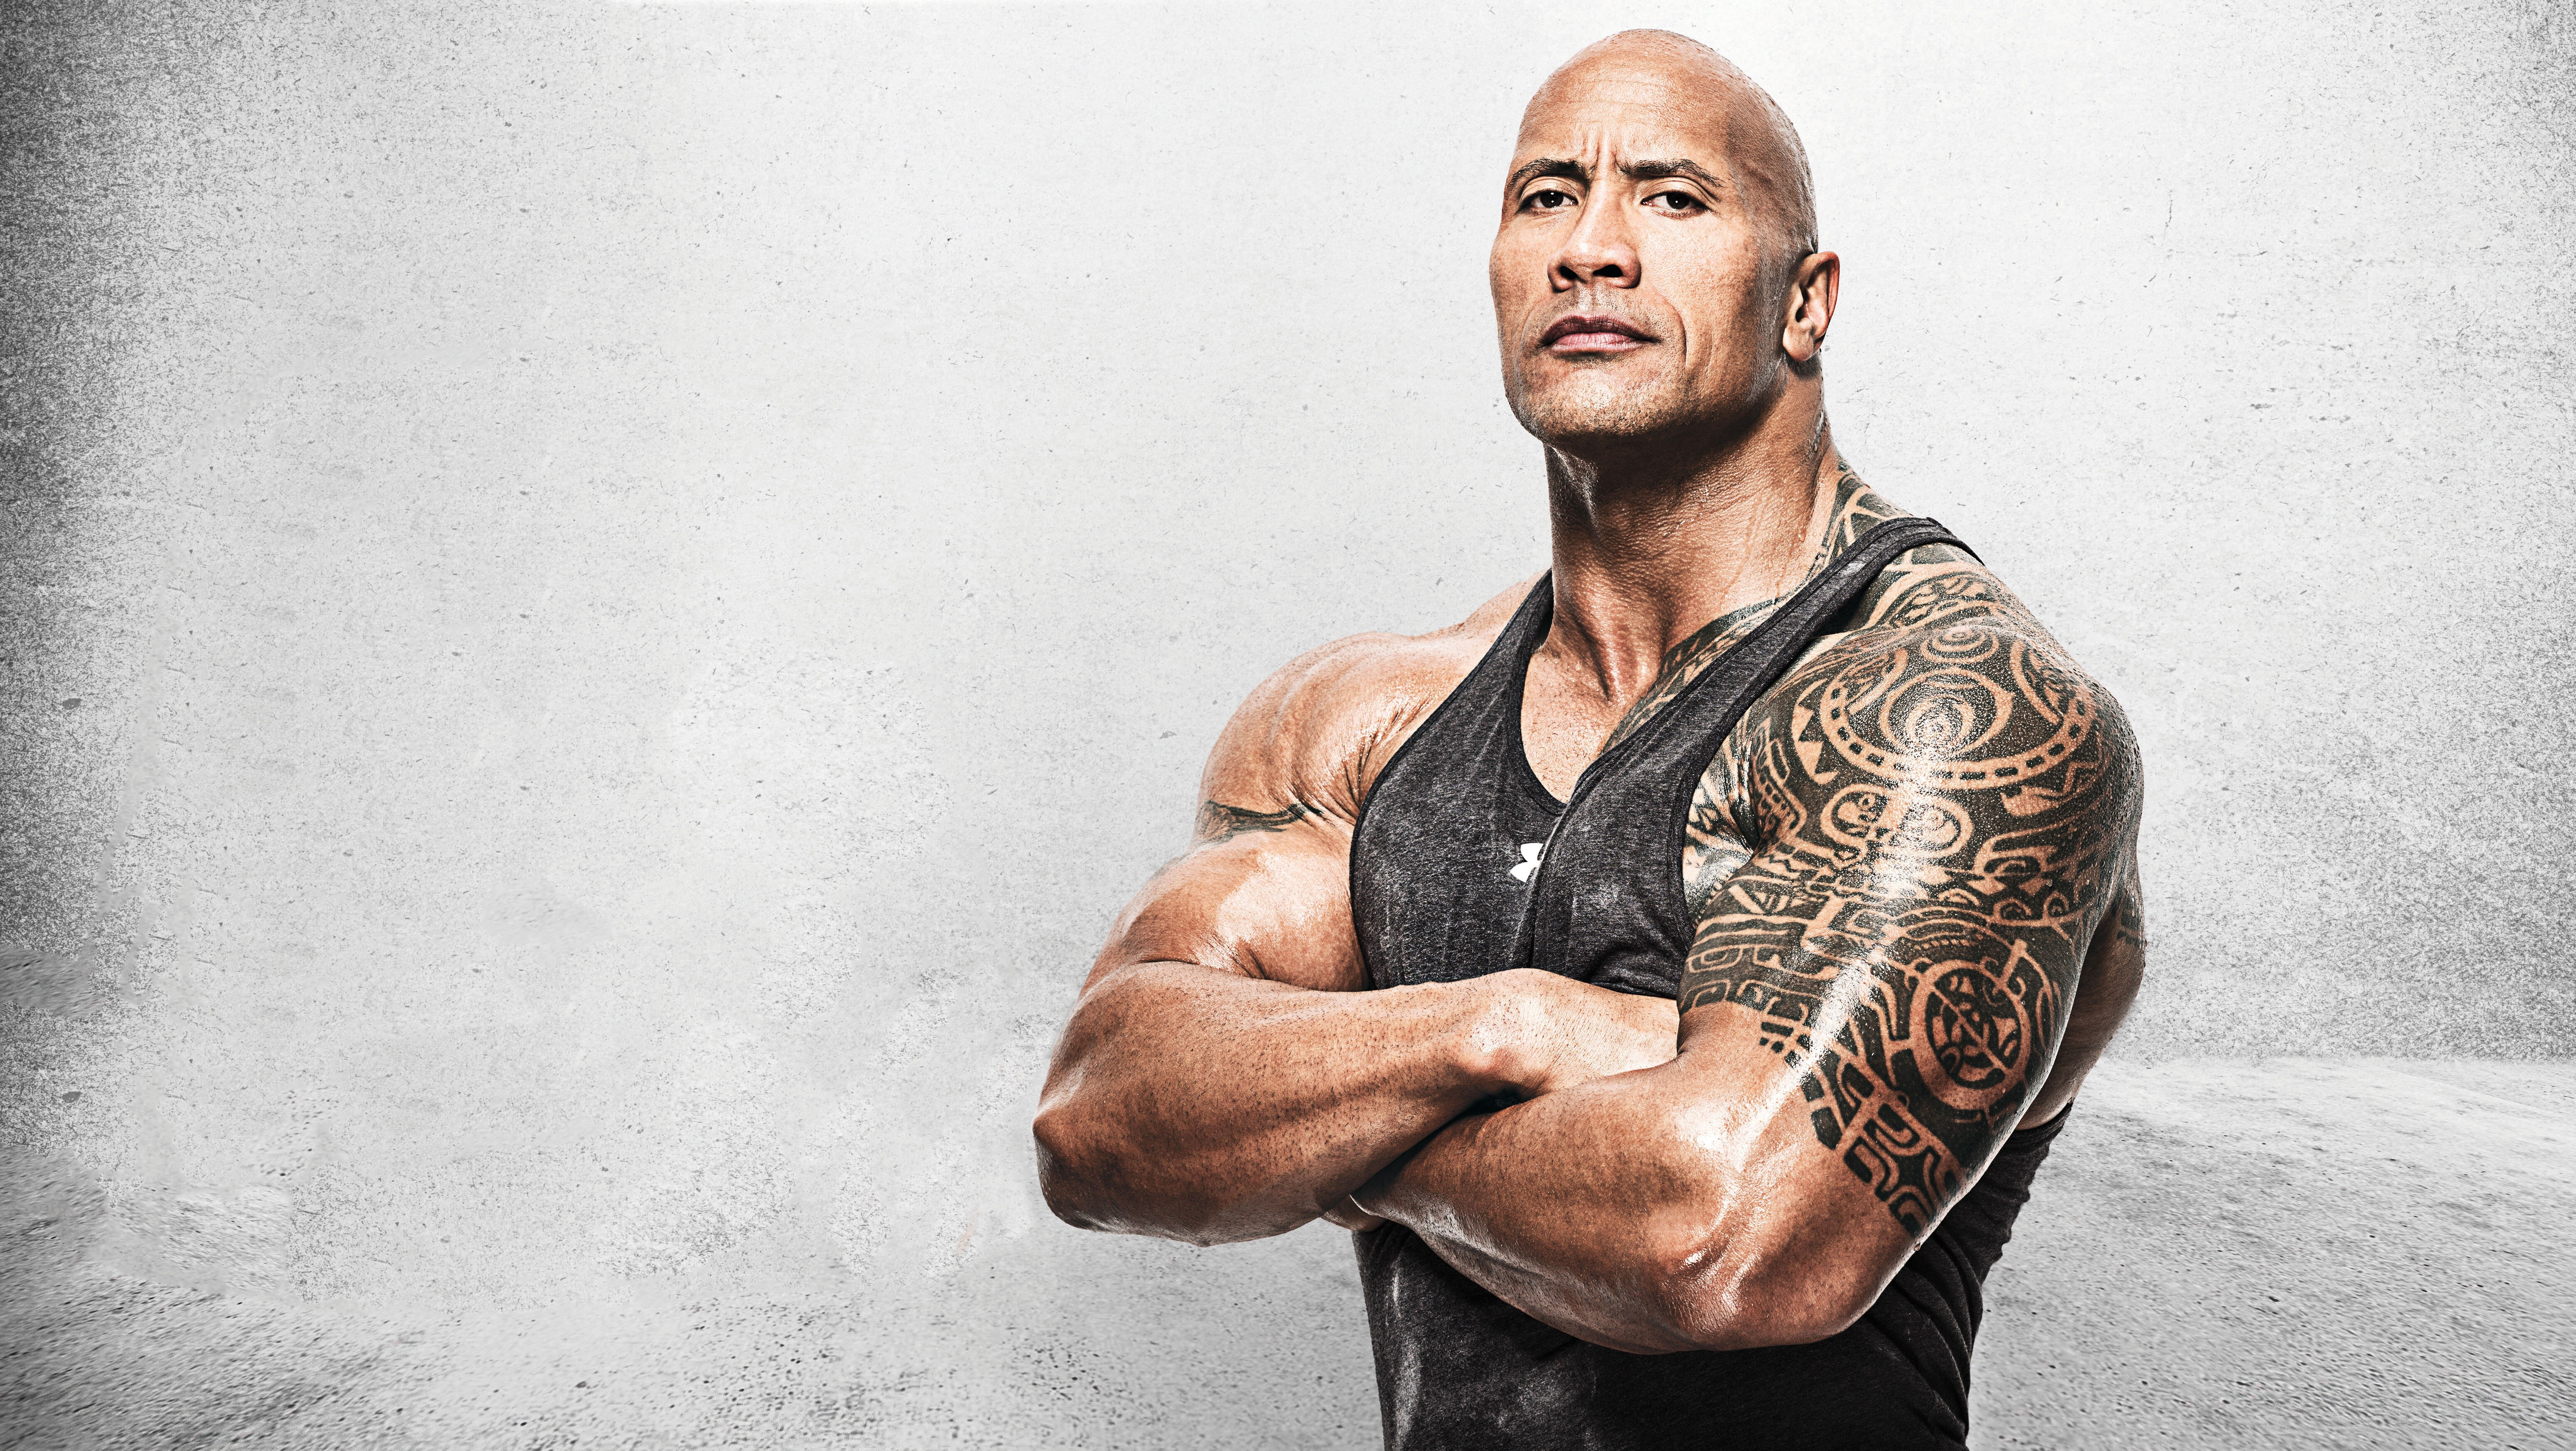 Dwayne Johnson Hollywood Actor 5k Wallpapers Hd Wallpapers